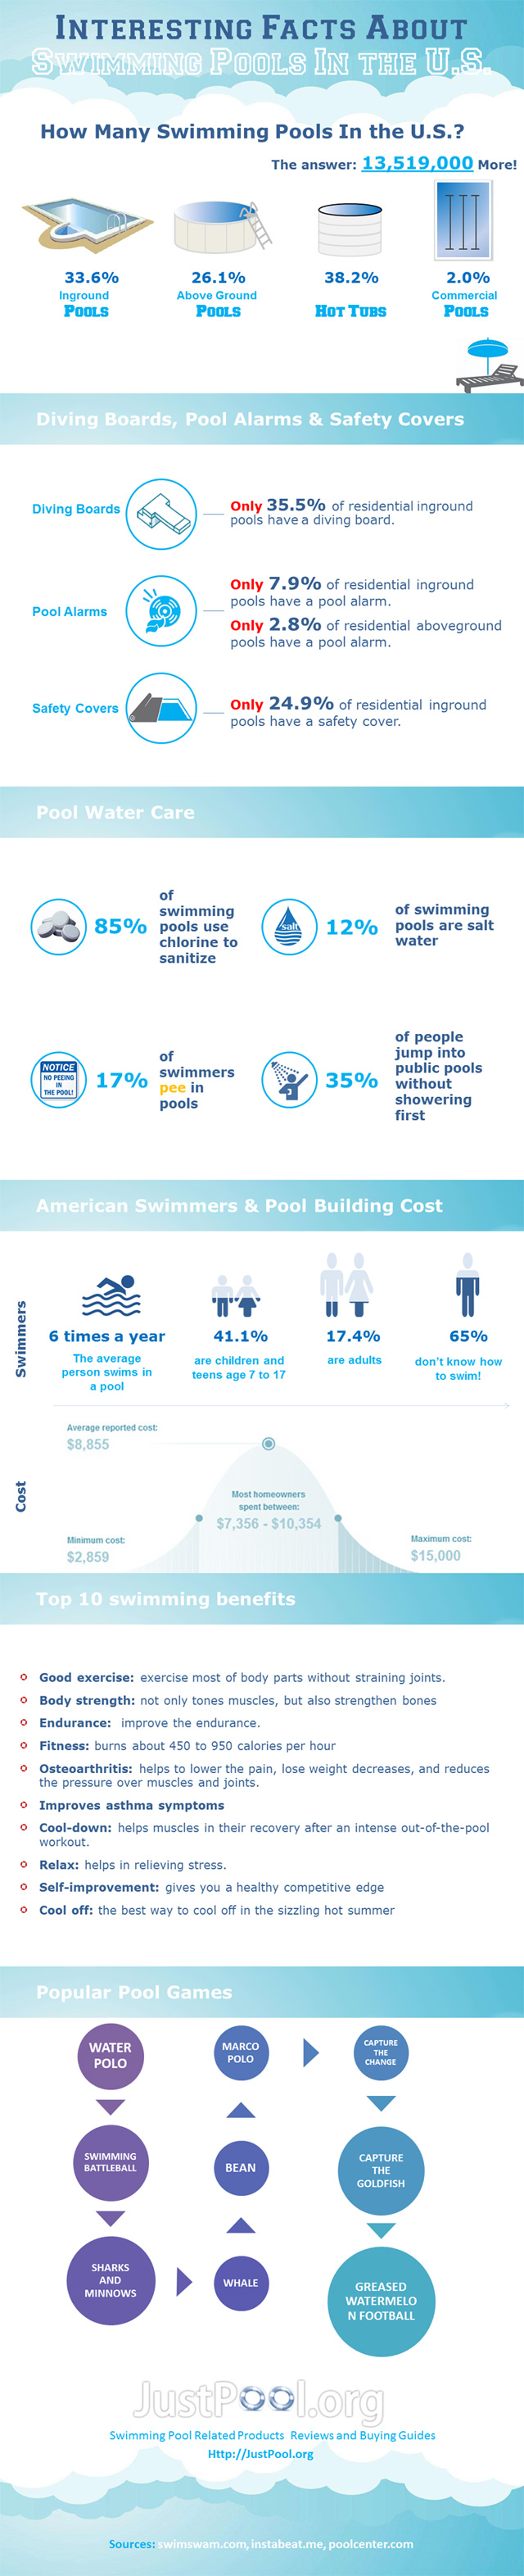 swimming-facts-in-USA-infographic-plaza